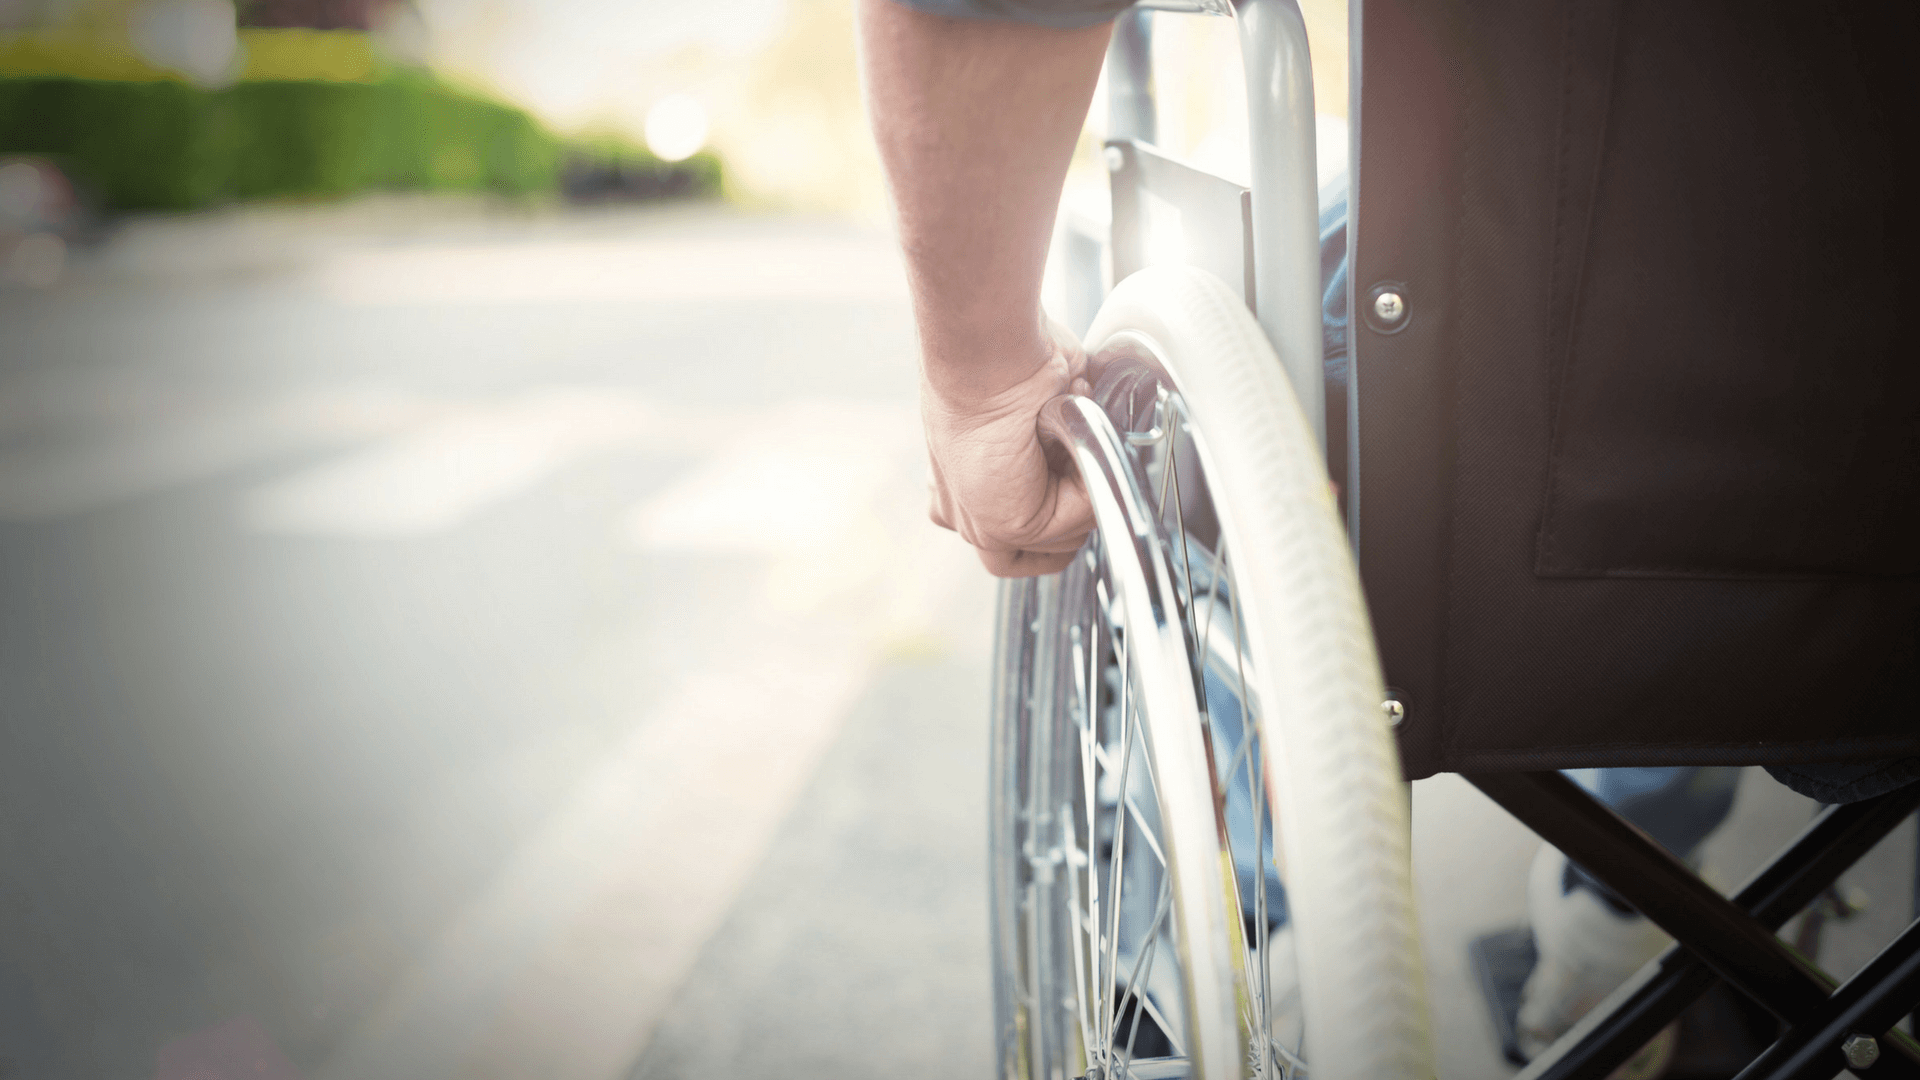 Emergency Preparedness for Citizens Living with Disabilities